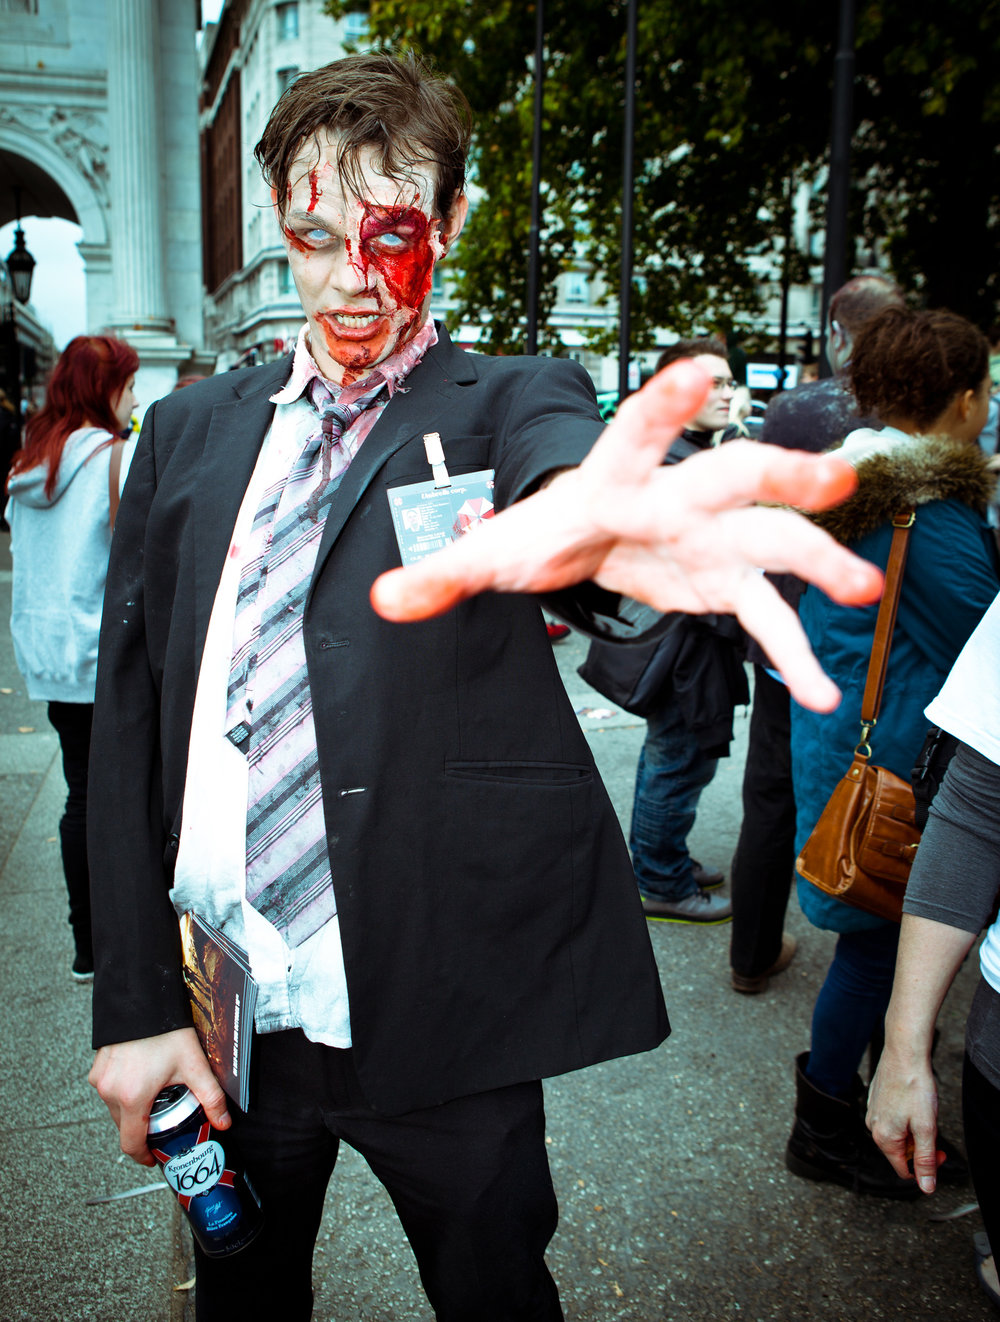 World Zombie Day 2011. (Martin SoulStealer/Wikimedia Commons)